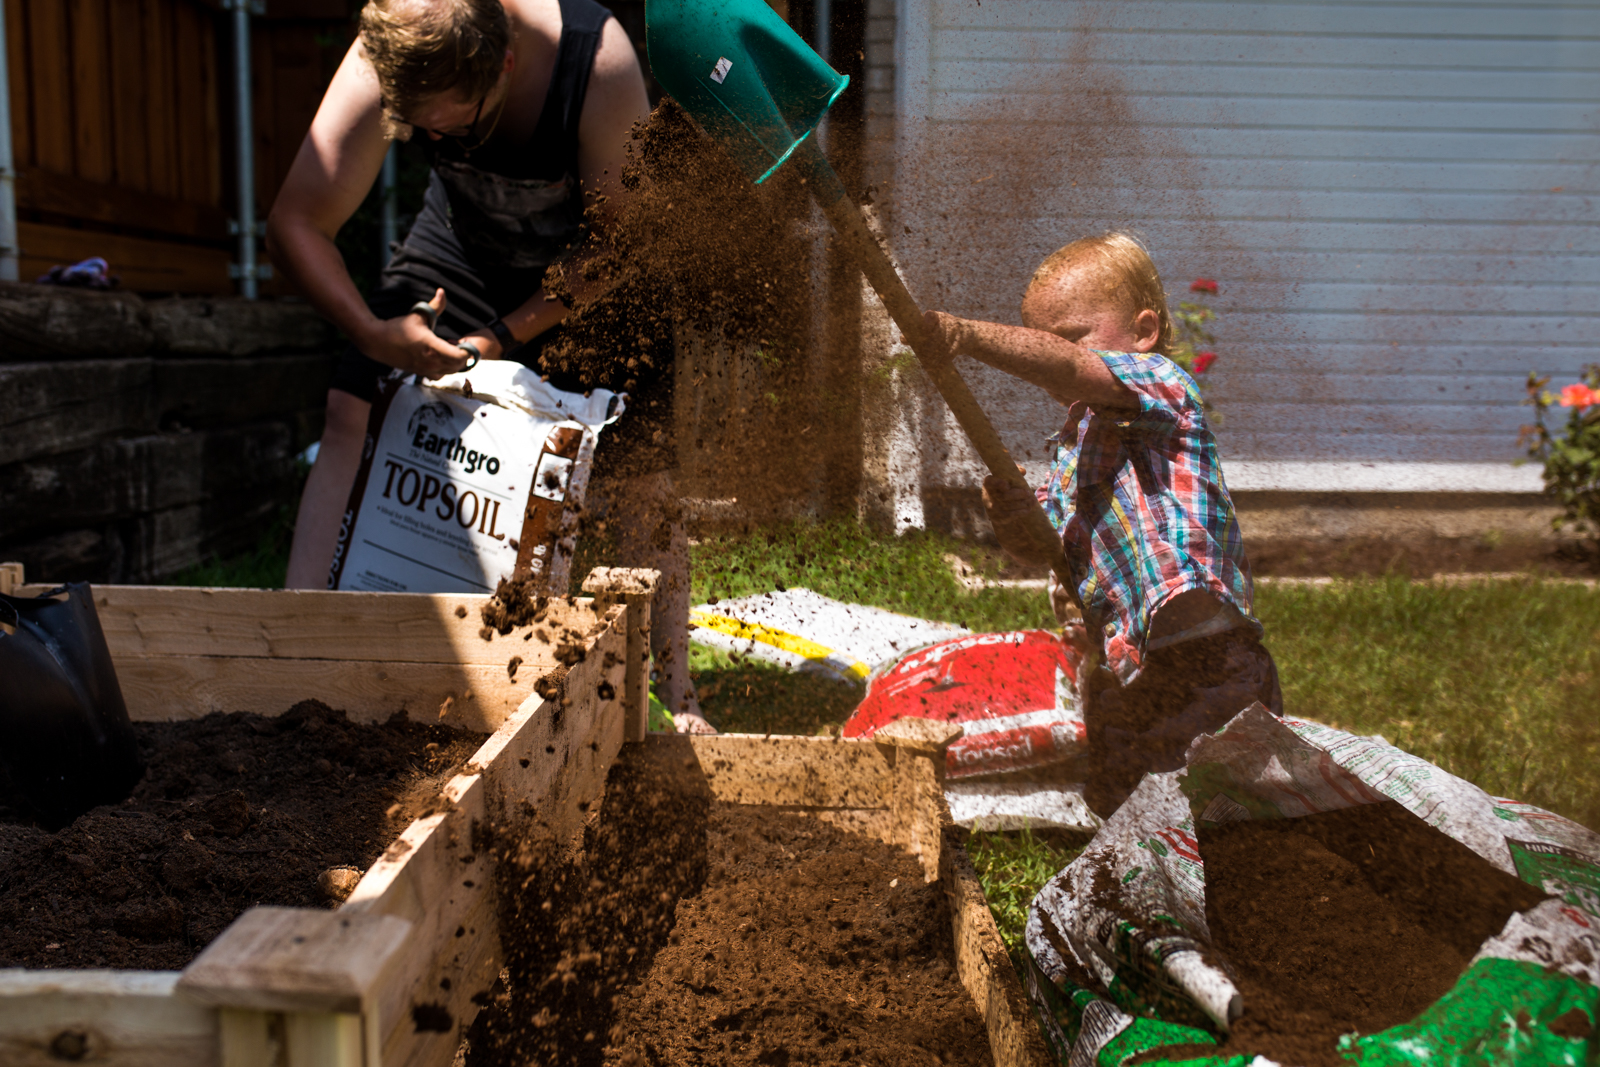 little boy trying to shovel dirt